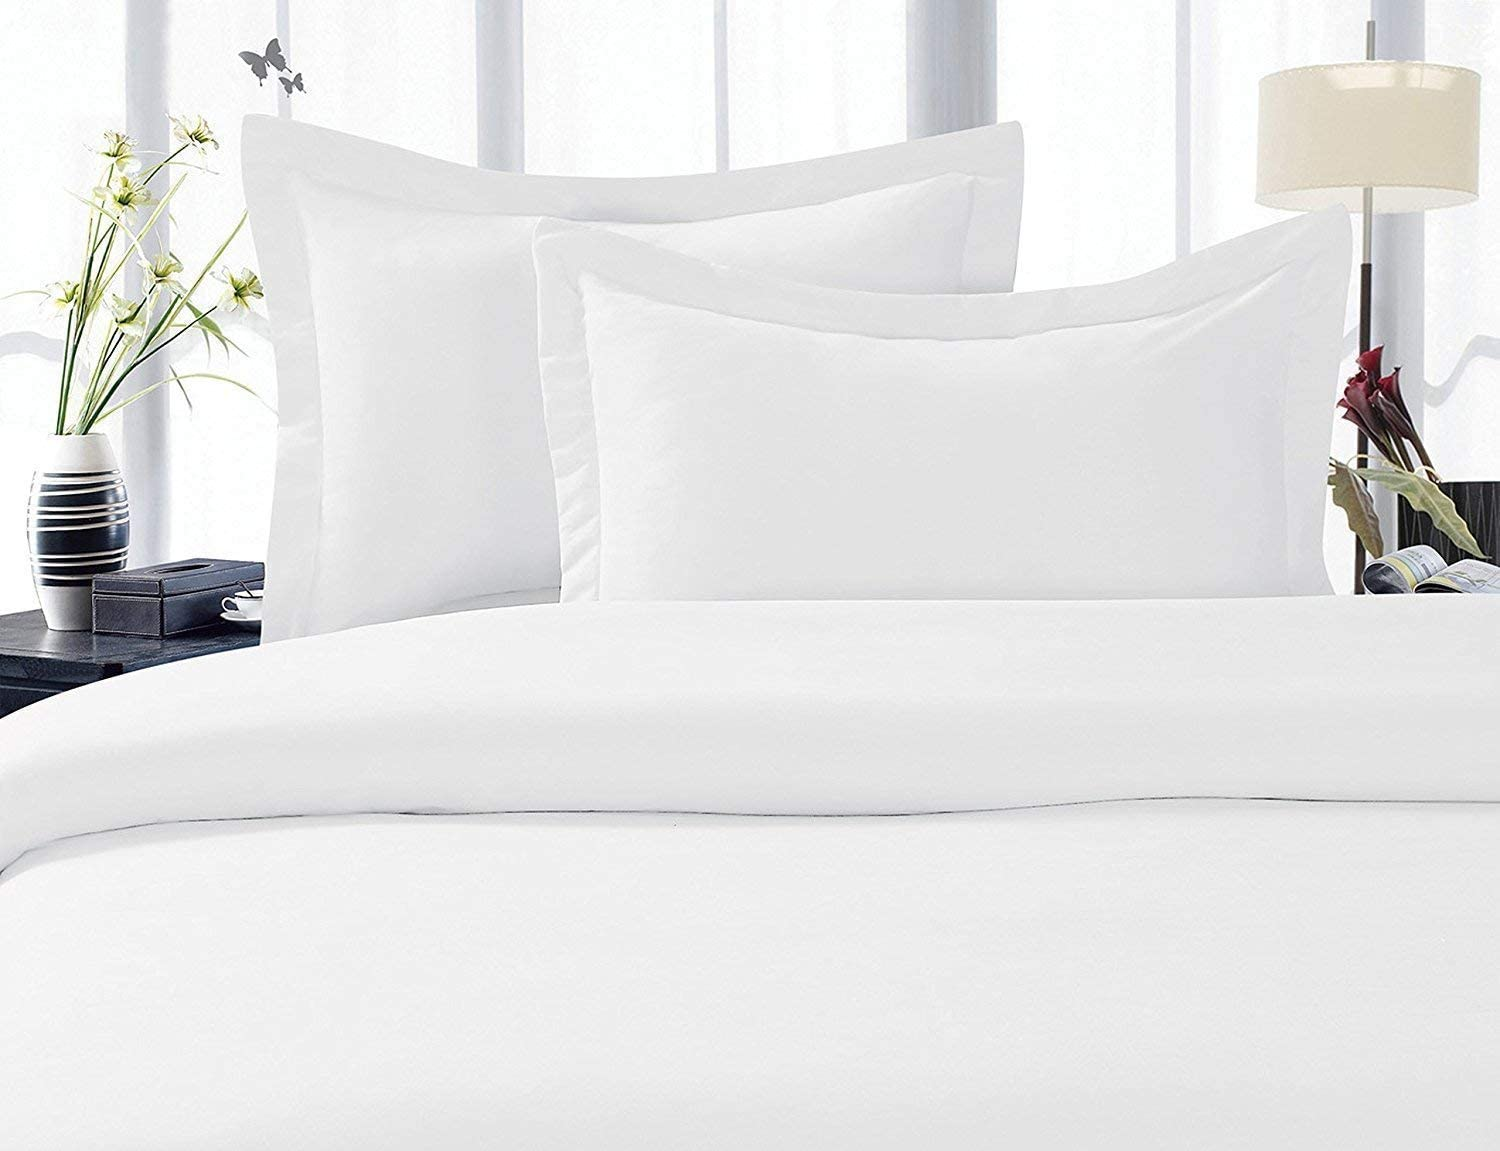 Duvet Set Fitted Sheet-30cm Deep King Size White Solid 1000 TC Egyptian Cotton